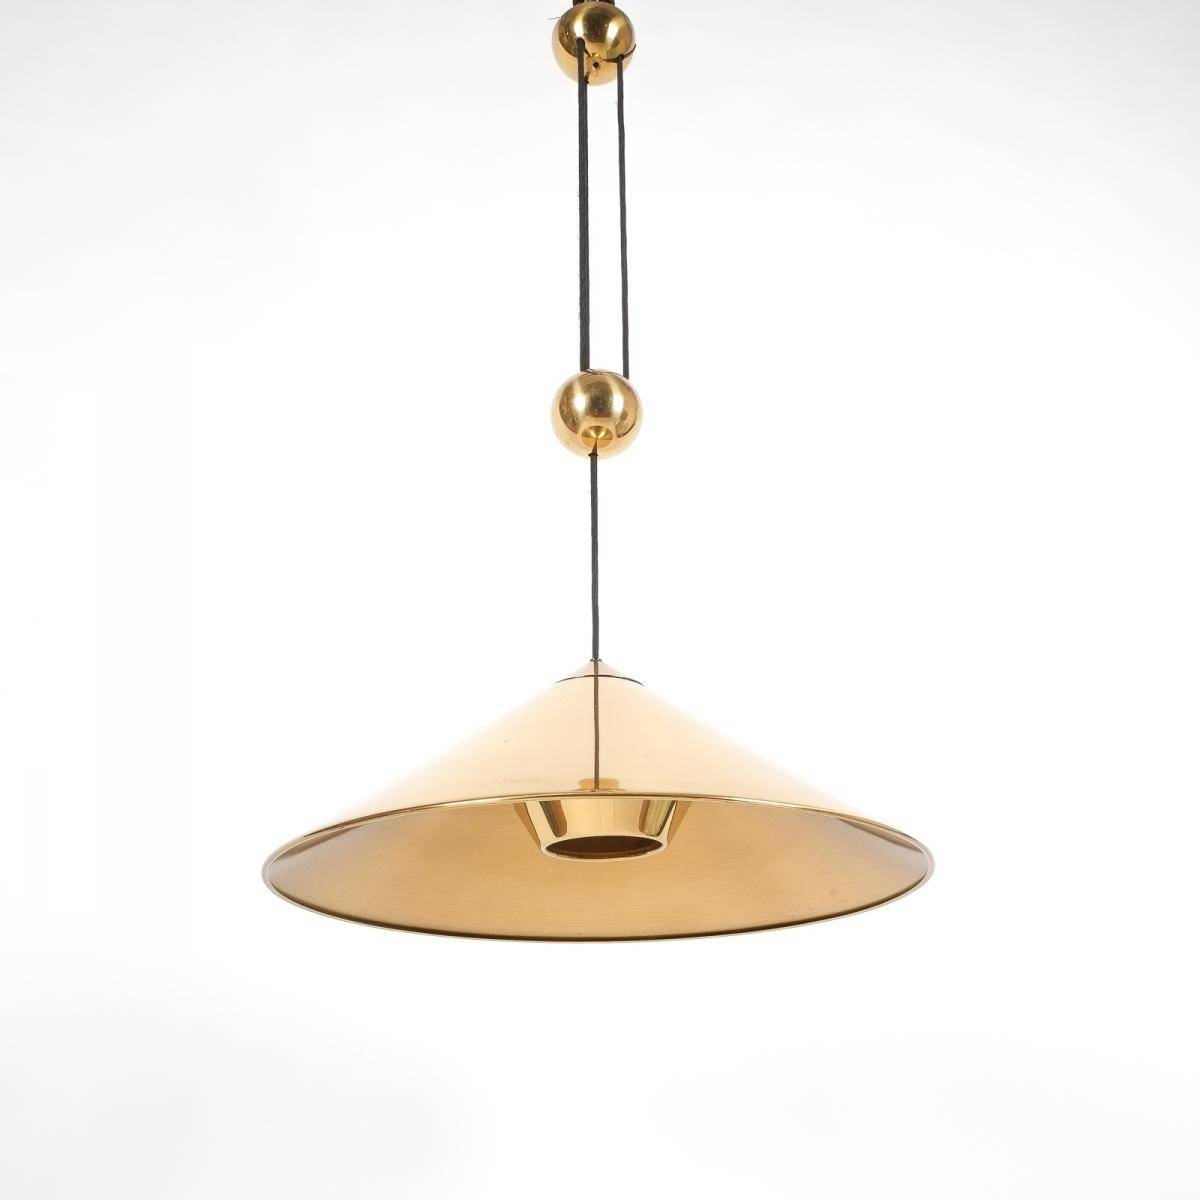 Large Adjustable Polished Brass Counterweight Pendant Lamp for Counterweight Pendant Lights (Image 11 of 15)